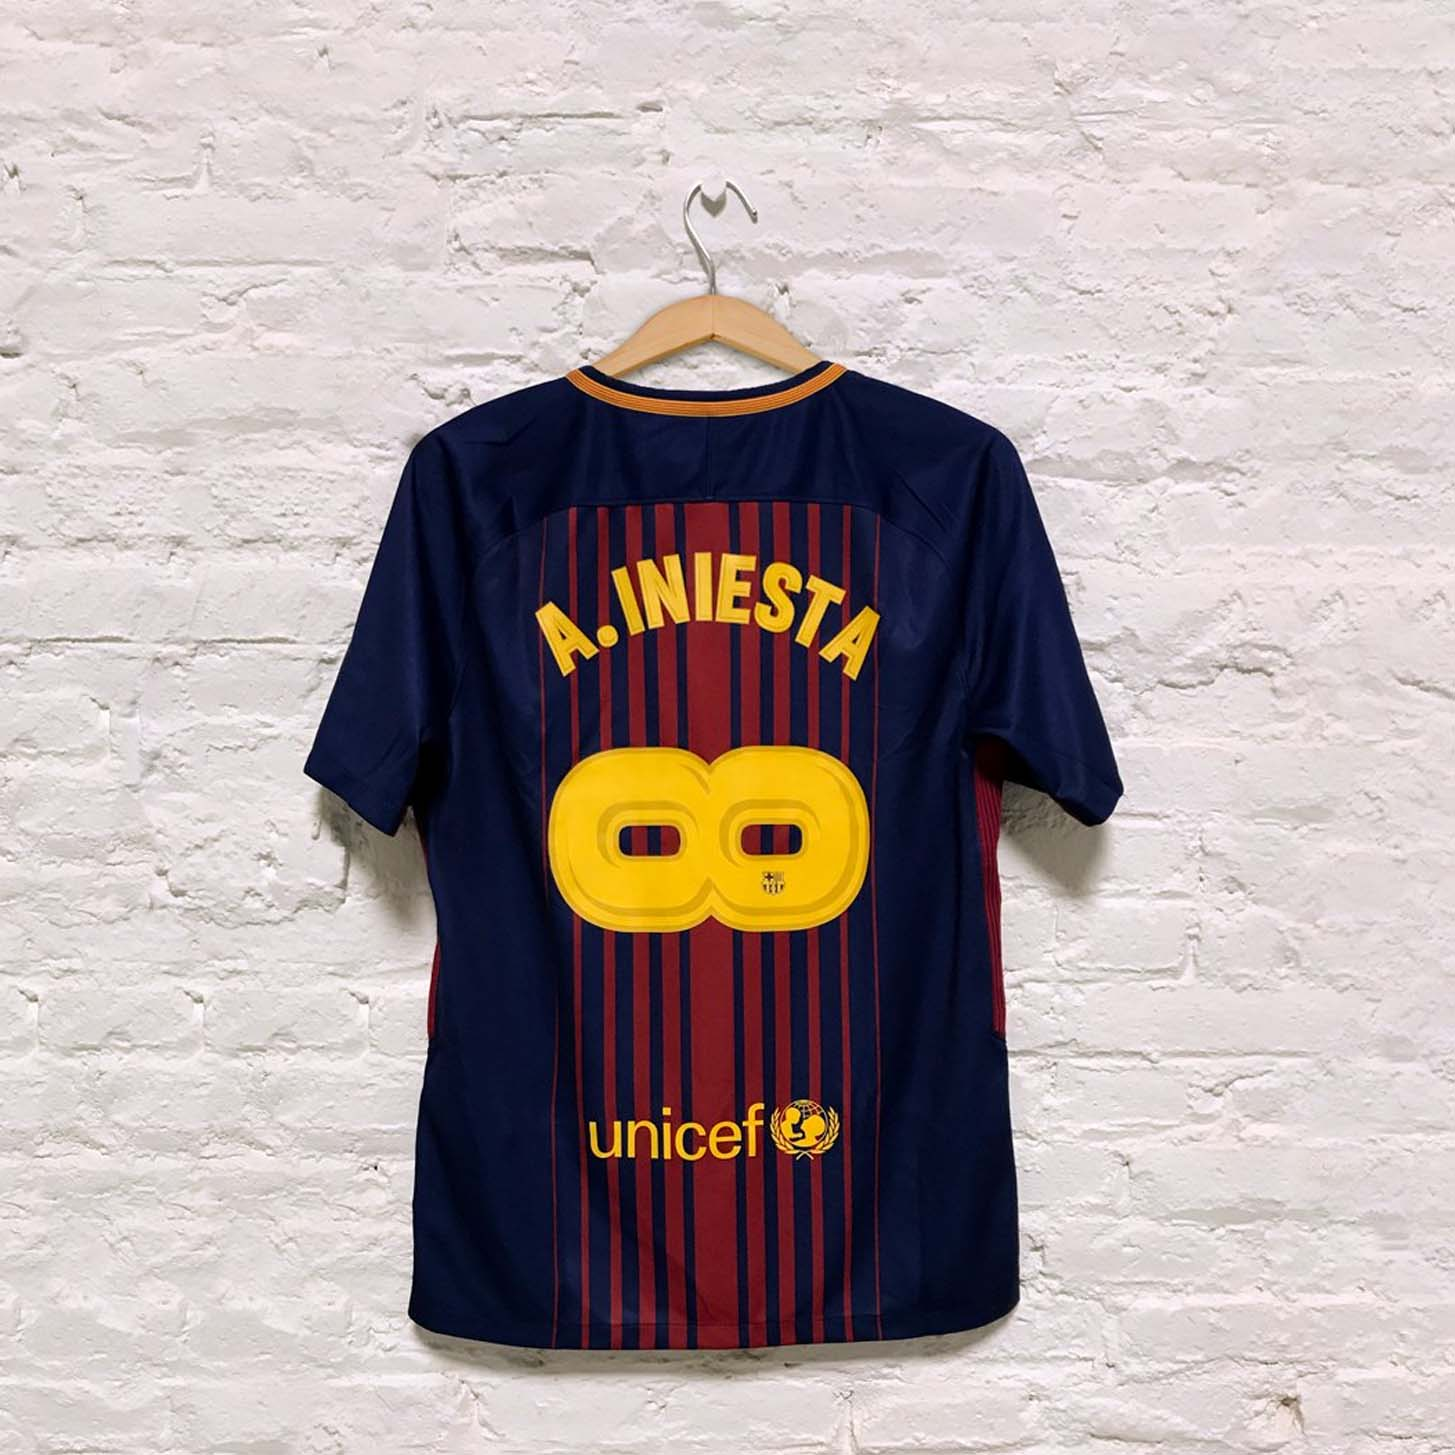 08ab4897fbd Nike Release Special Edition Iniesta Barca Shirt - SoccerBible